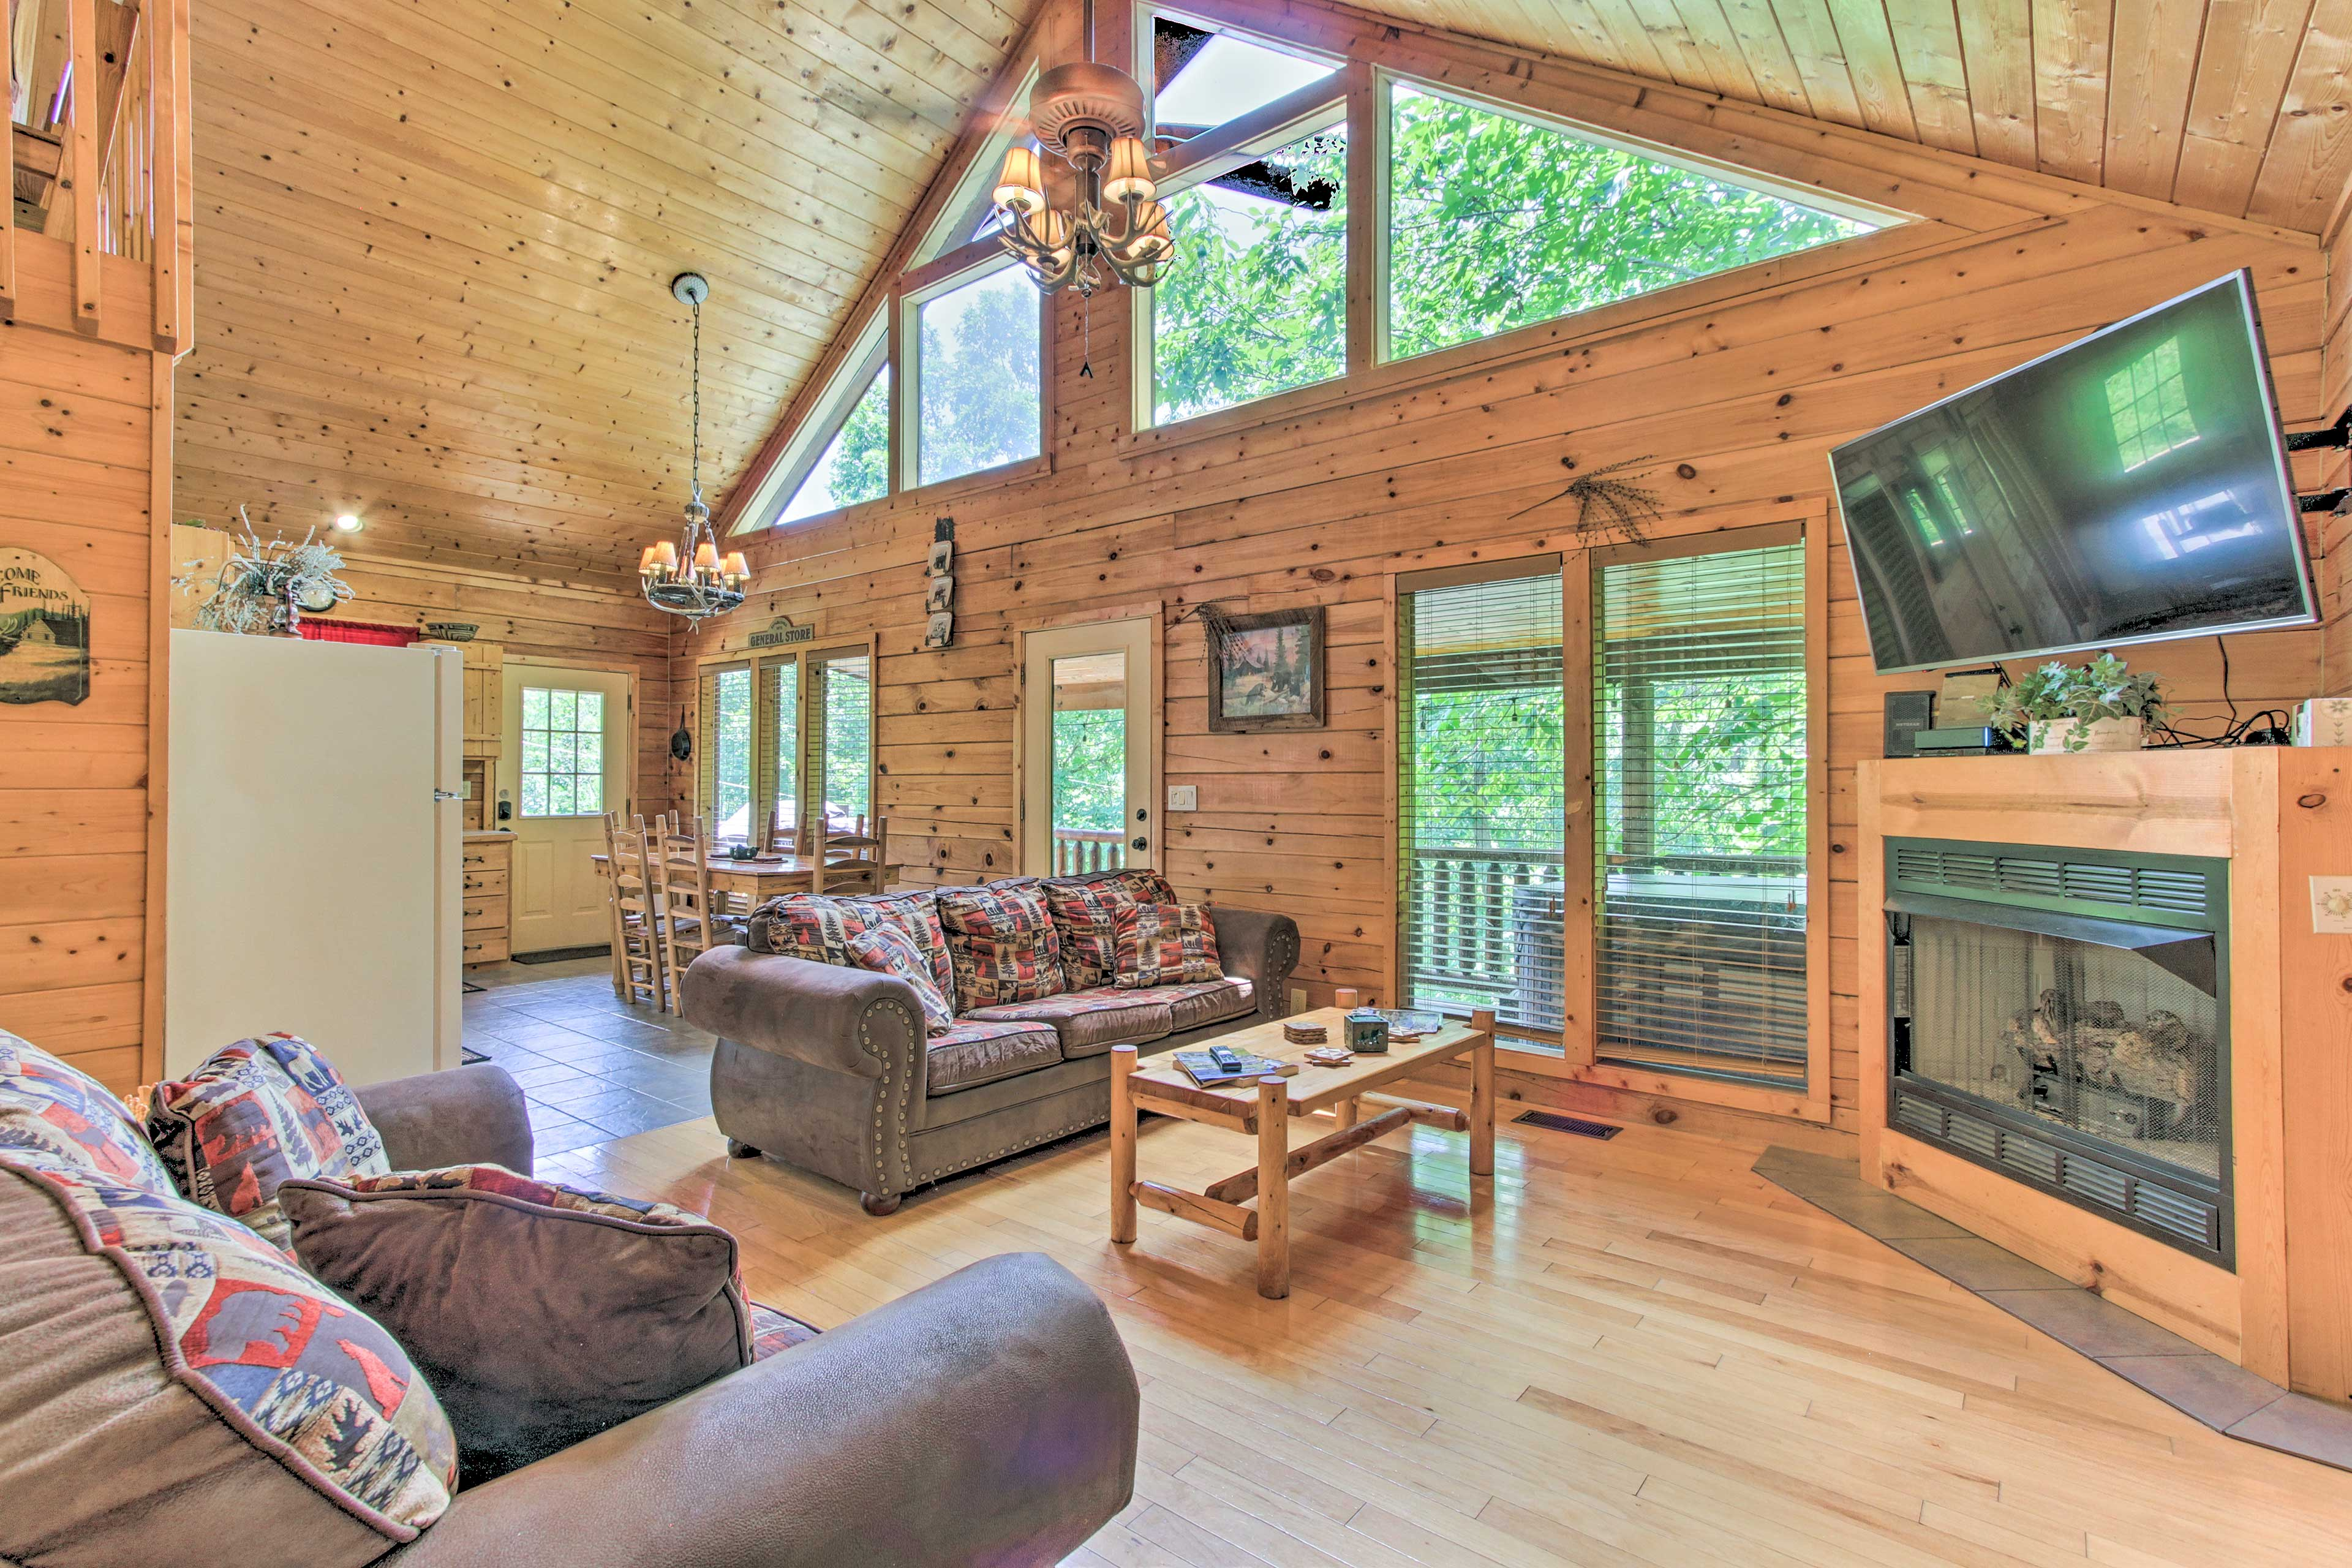 The Sevierville home is the ideal escape!